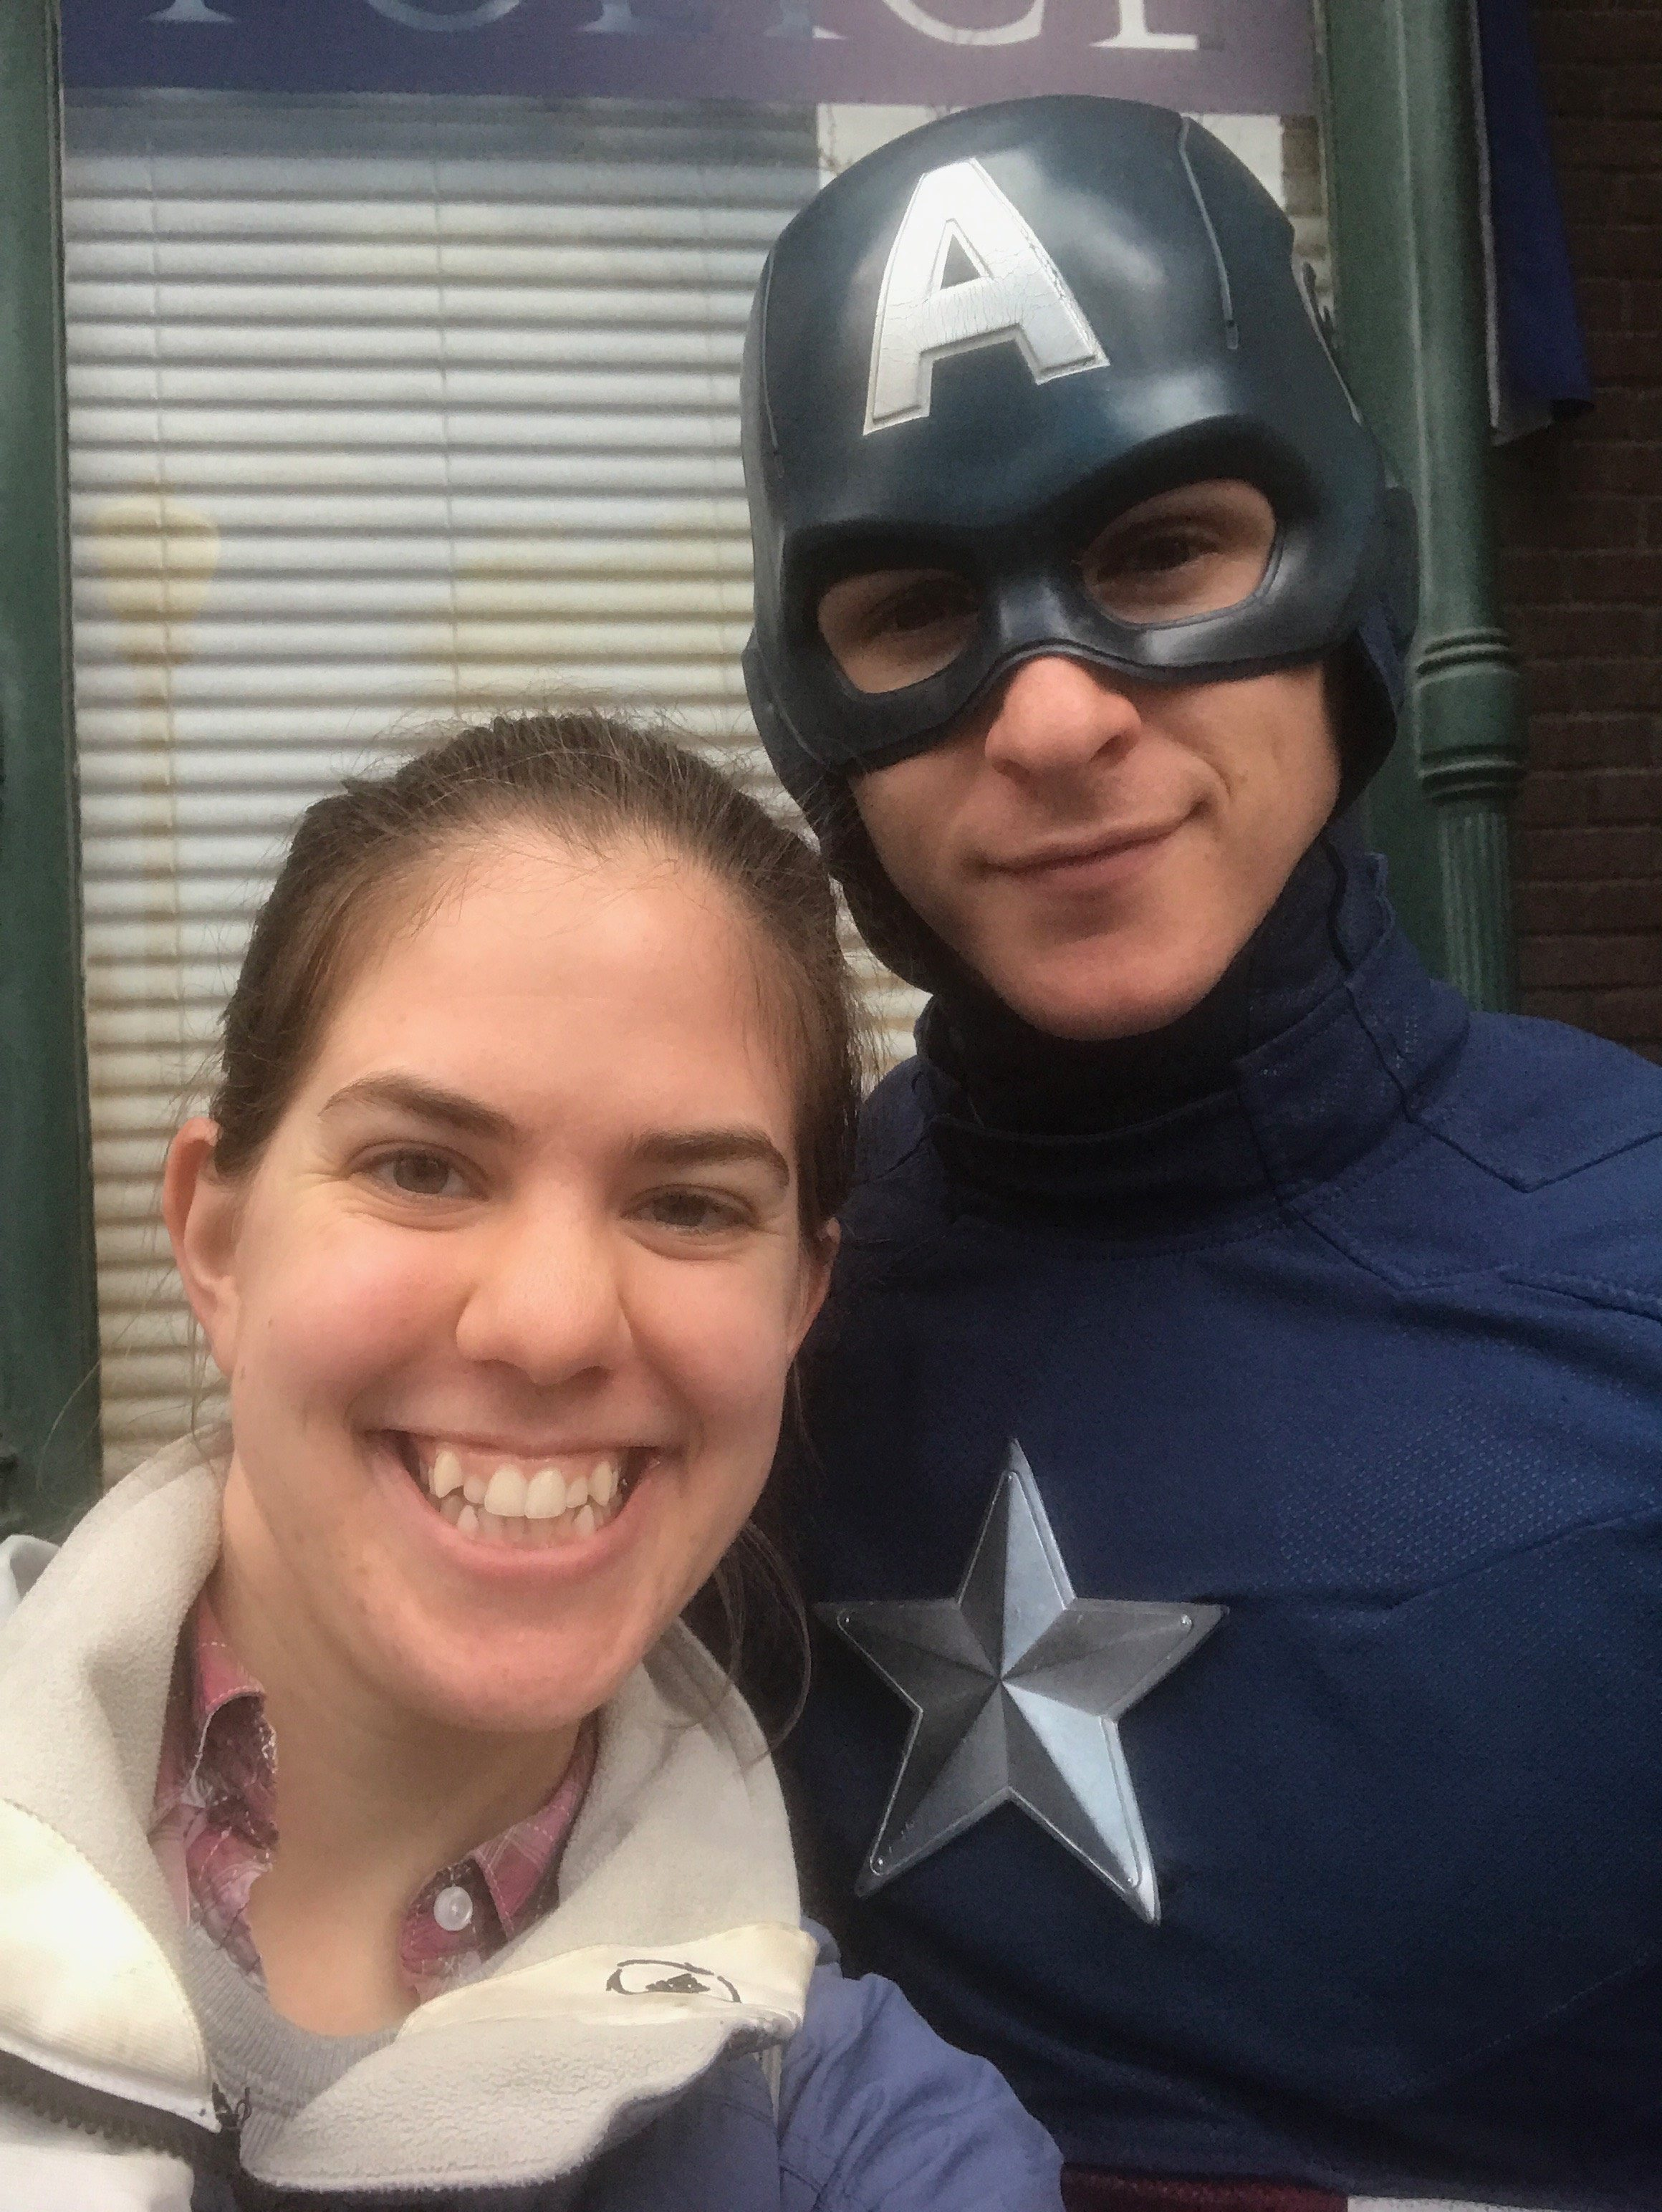 Marvel Diva's sister with Captain America